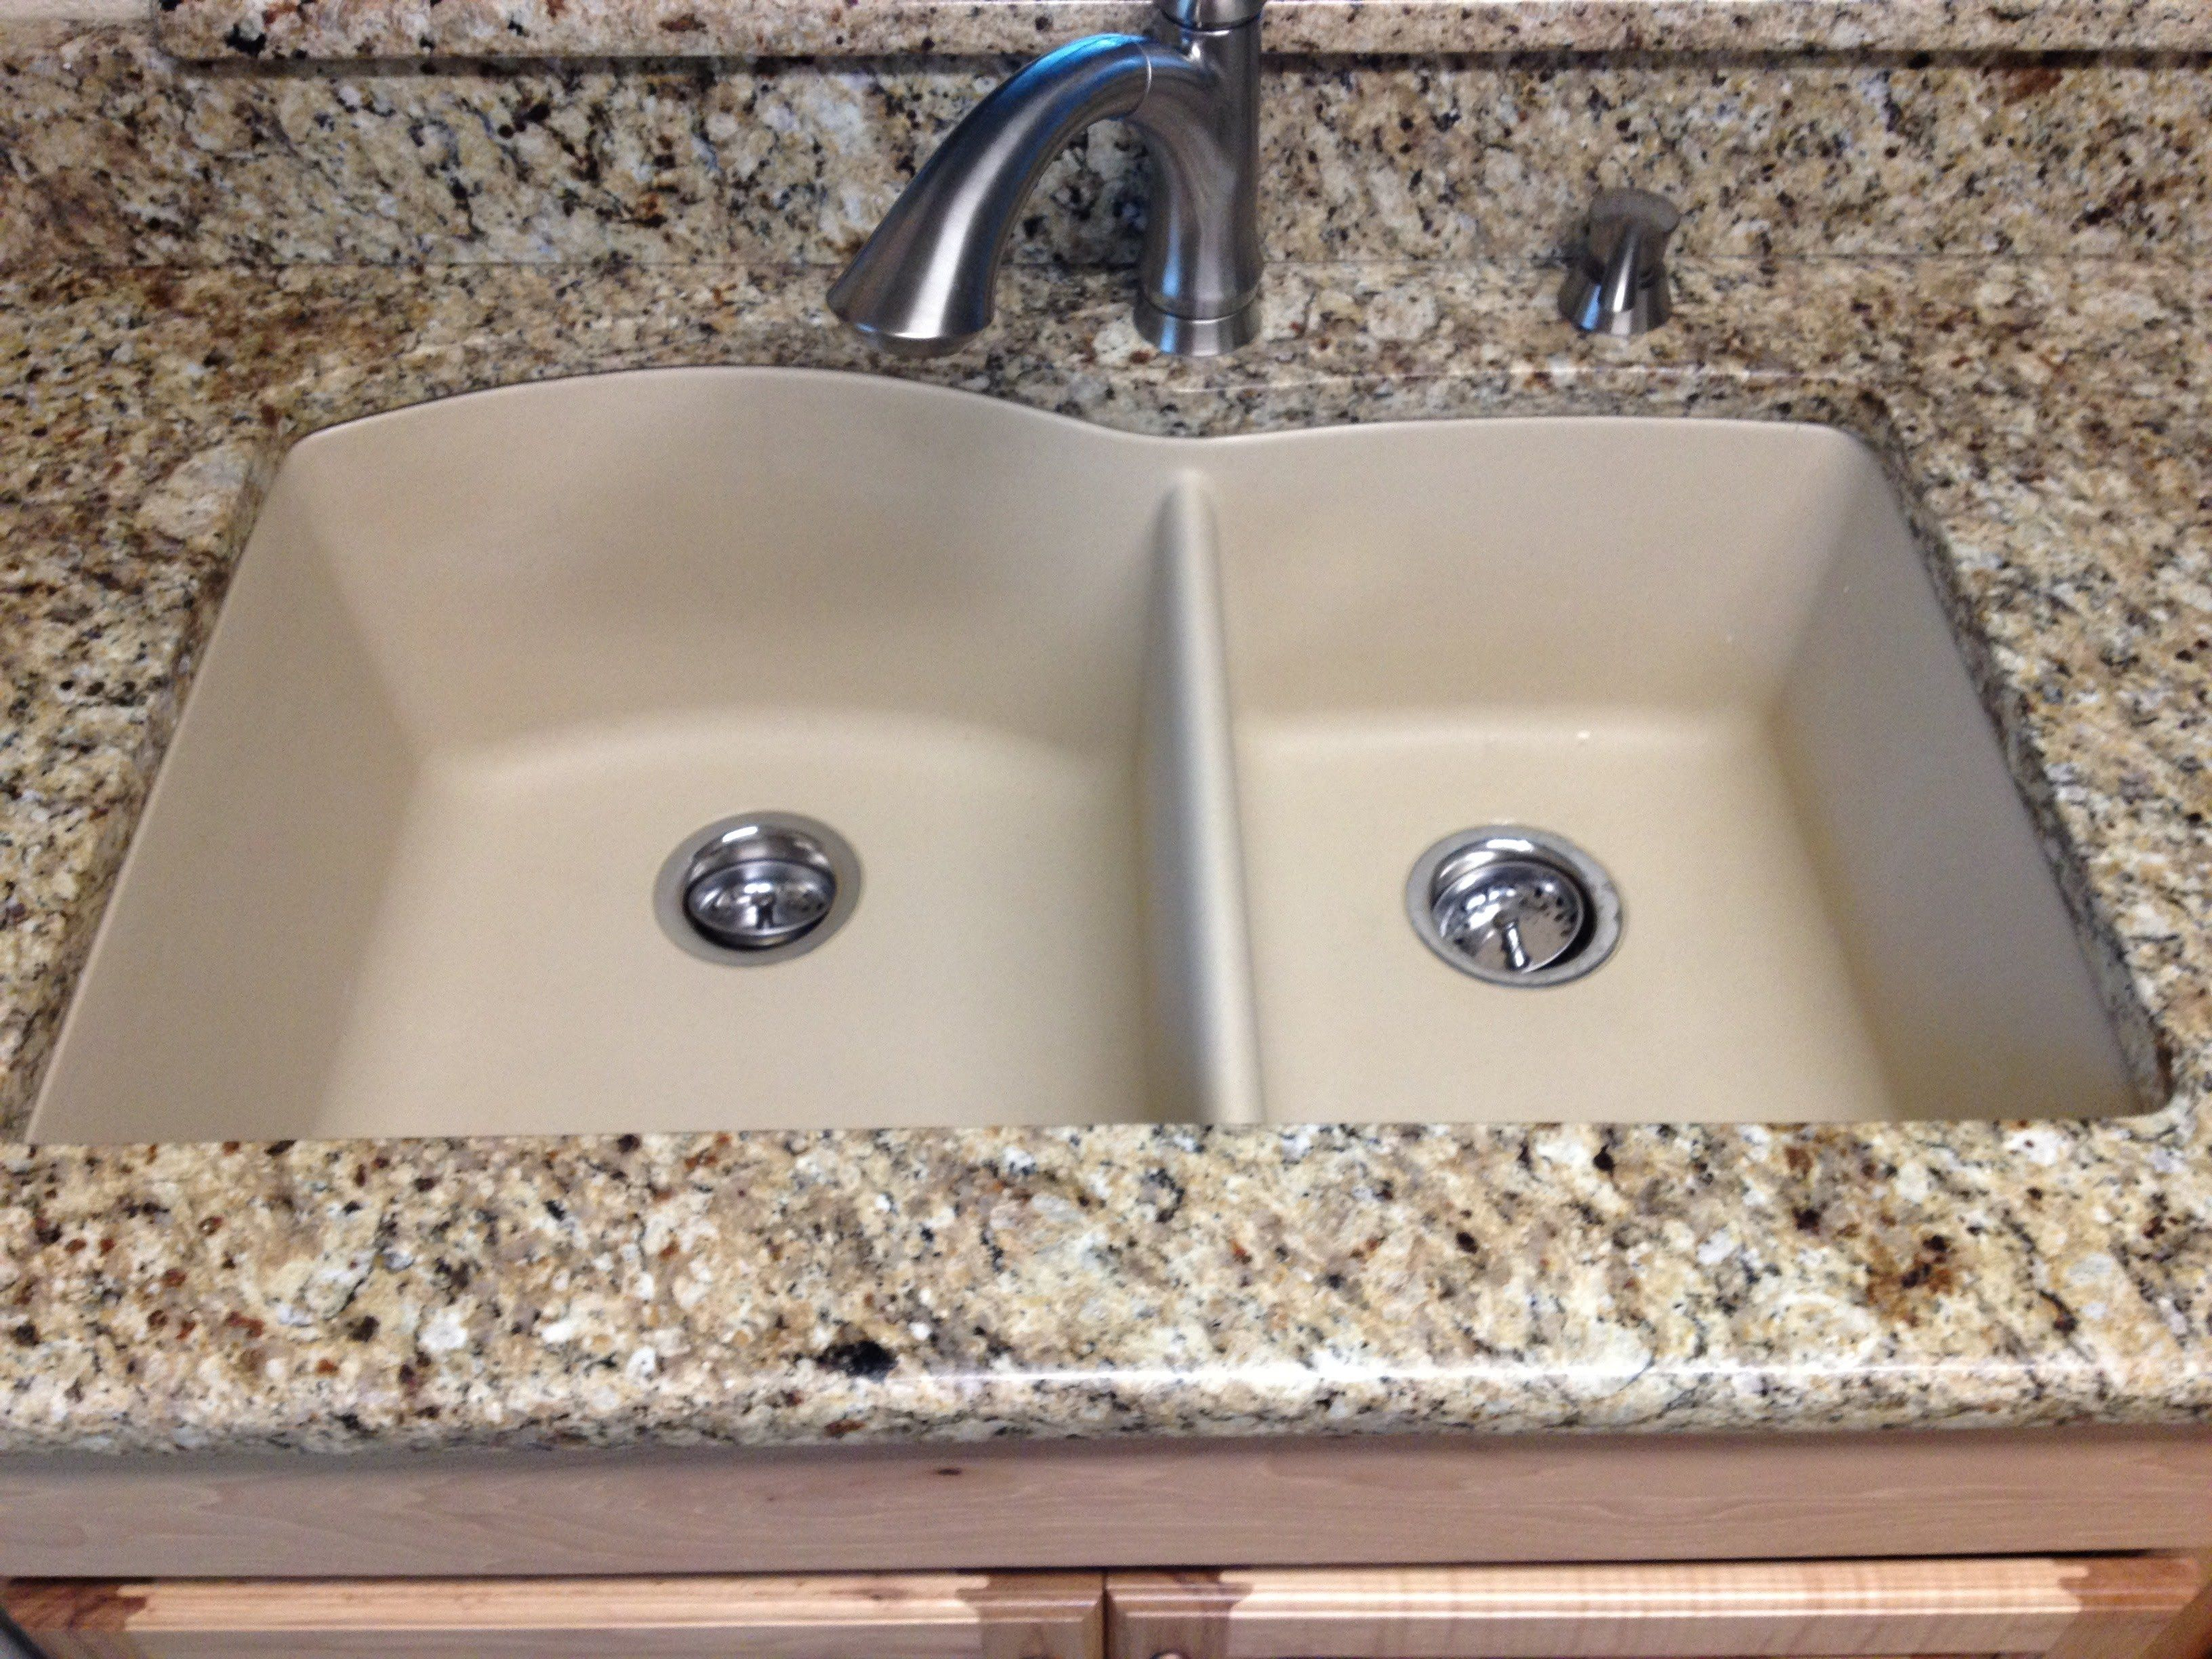 Best Kitchen Sinks For Granite Countertops Designing A And Purchasing All The Items To Complete Conversion Of